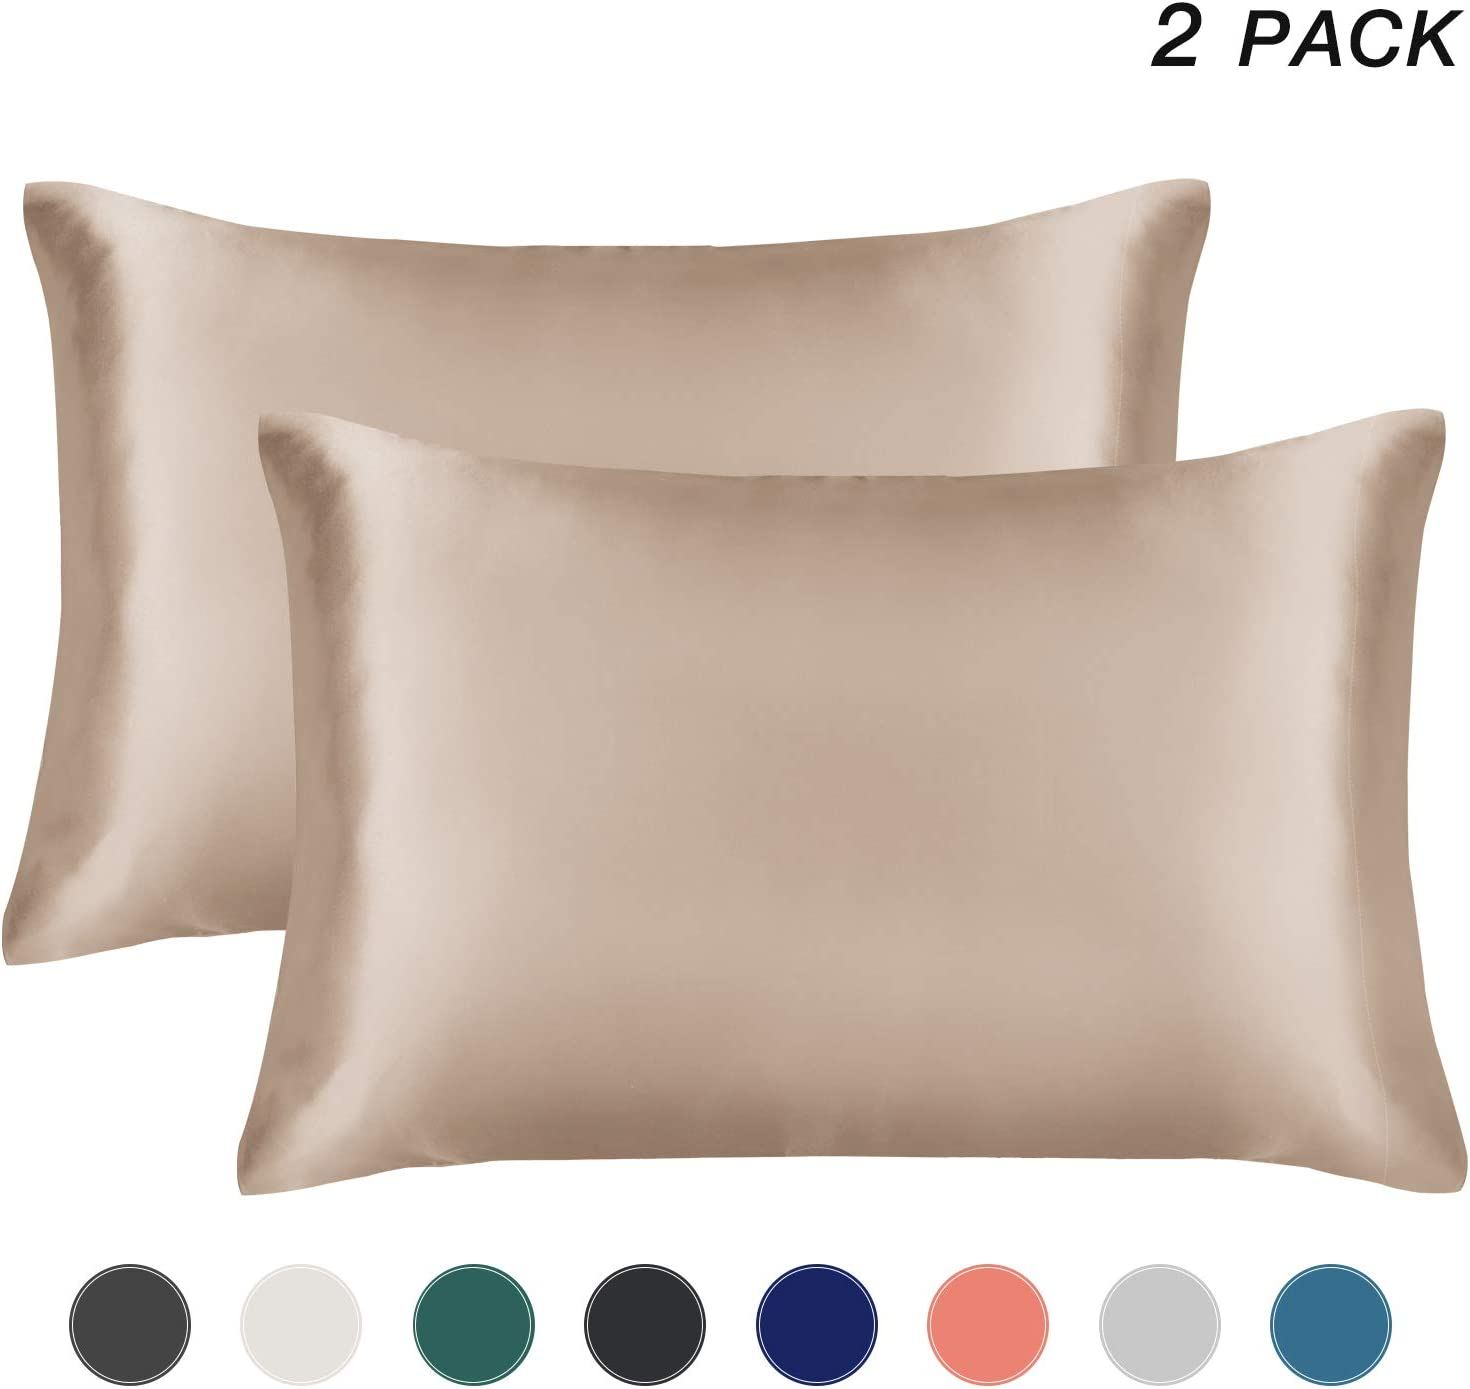 EXQ Home Satin Pillowcase for Hair and Skin, Camel Taupe Cooling Pillow Cases King Size Pillow Cases Set of 2 Pillow Covers with Envelope Closure (20x40 Inches)